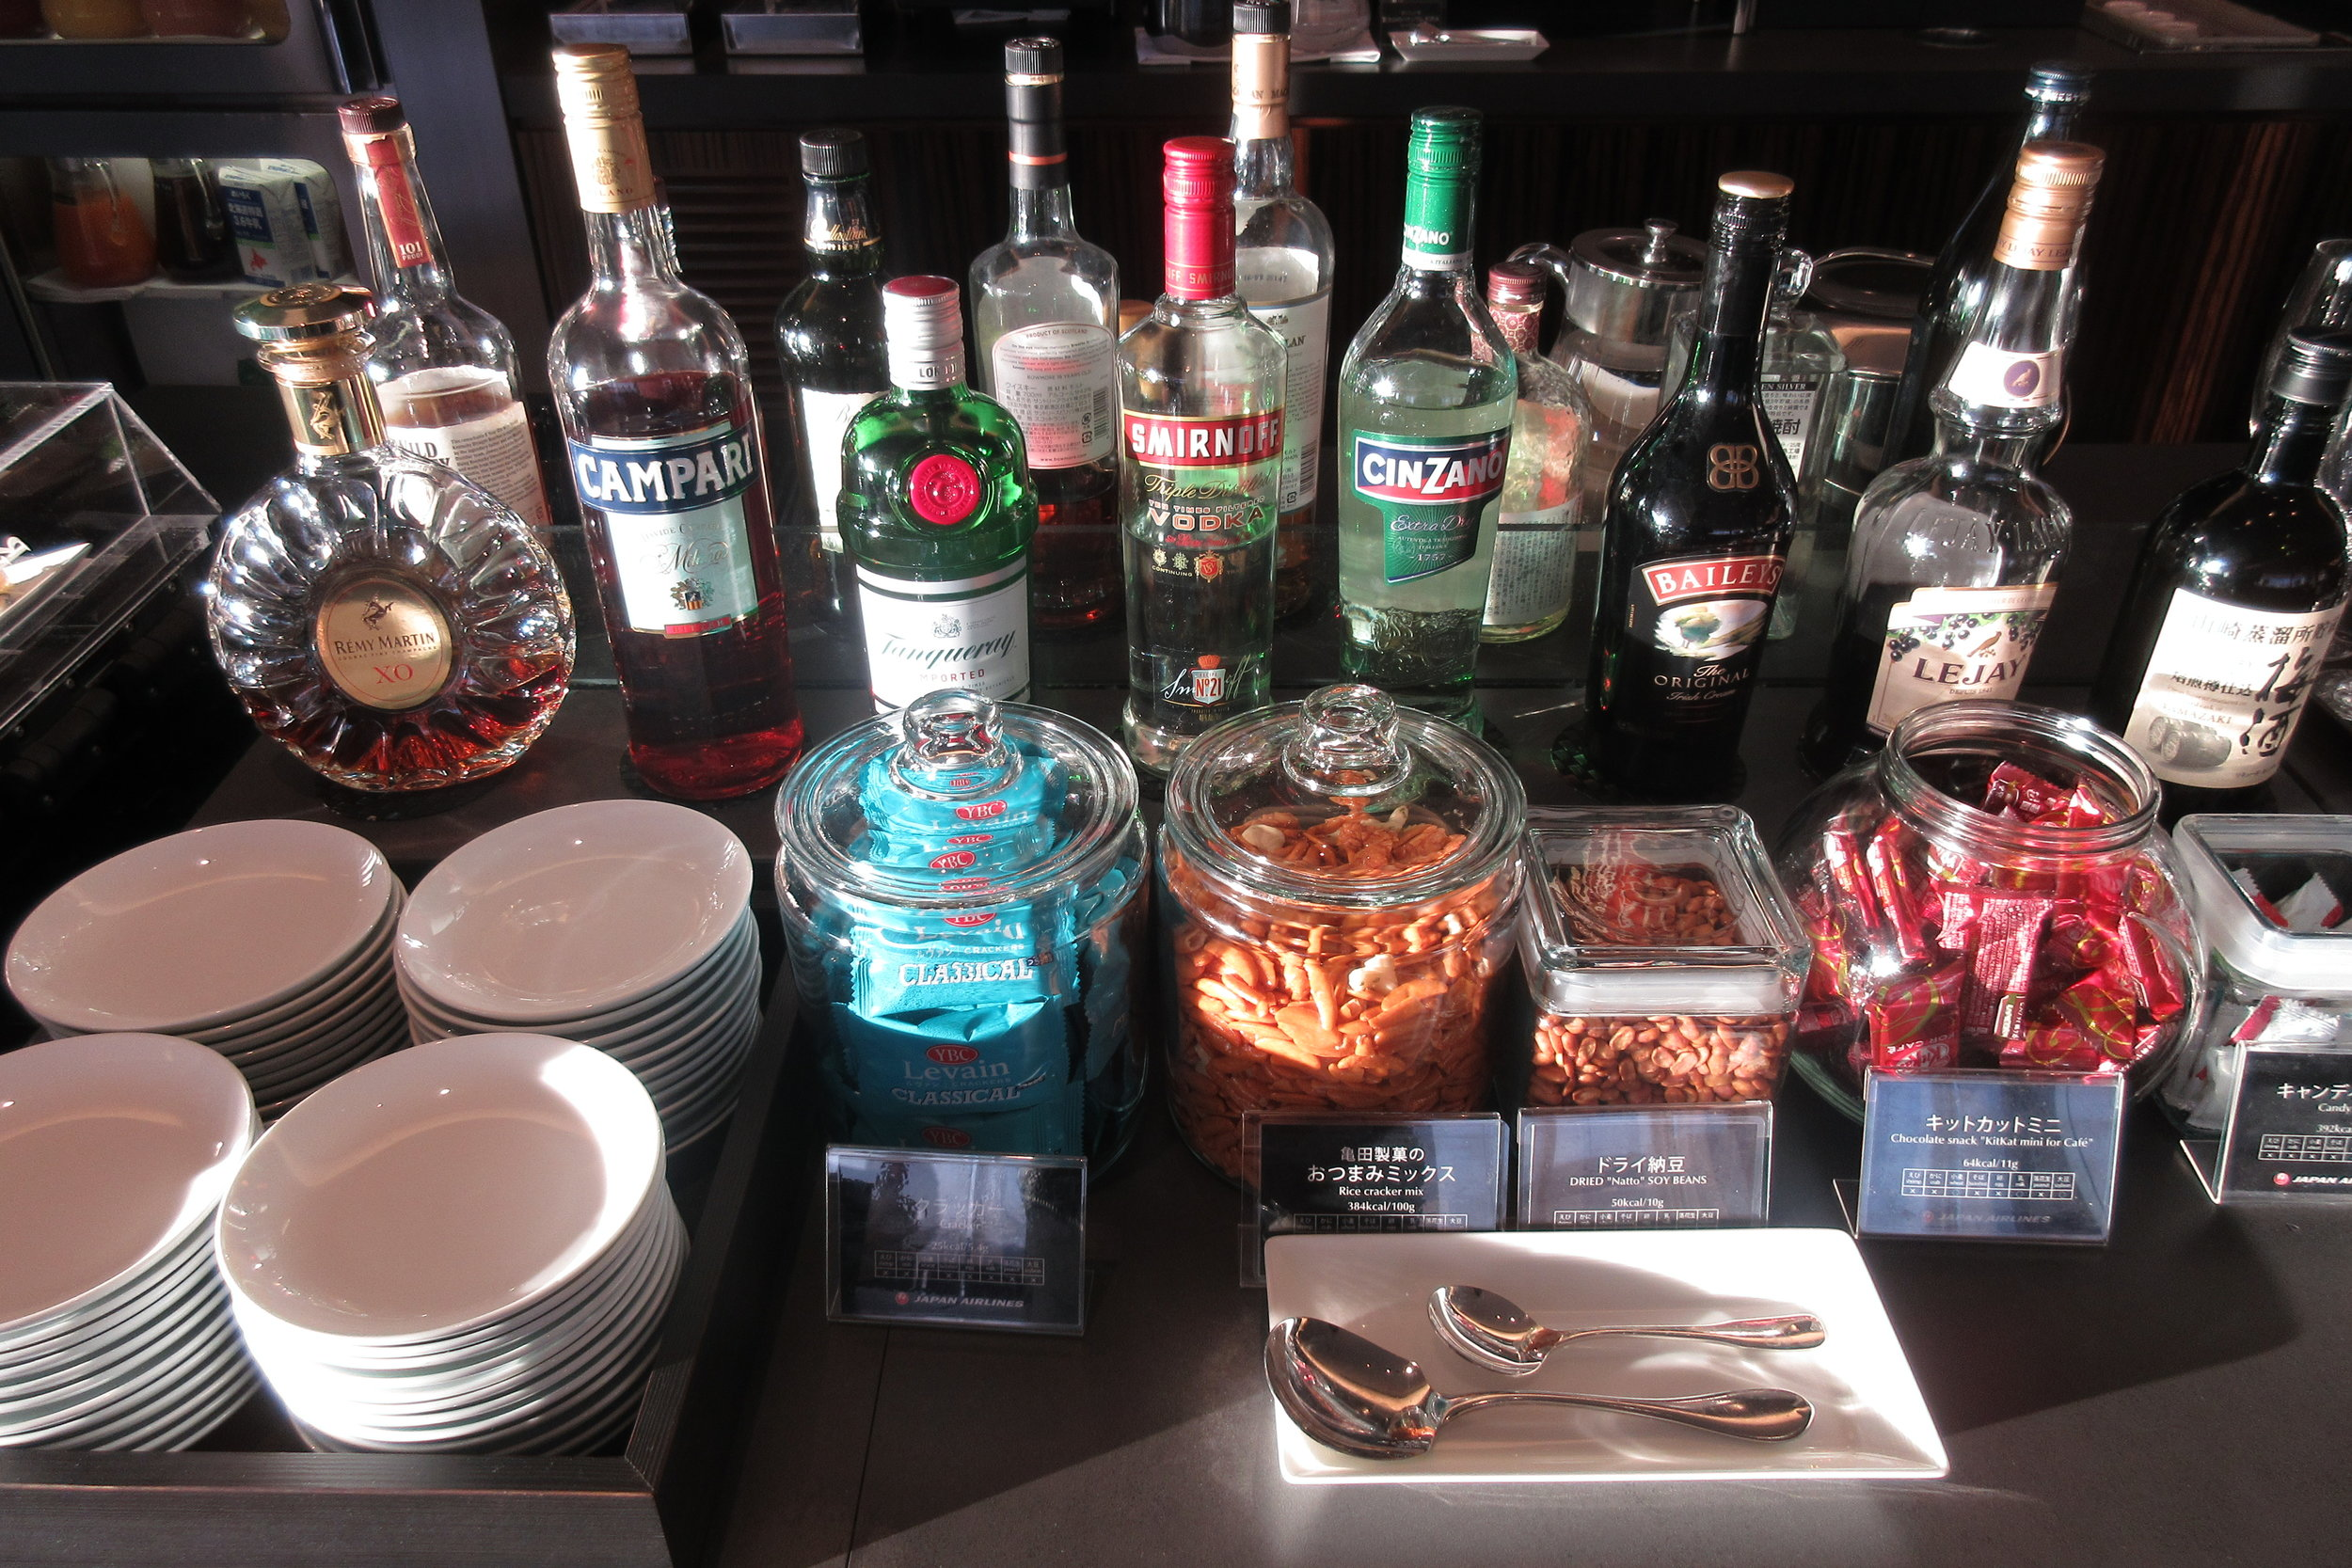 Japan Airlines First Class Lounge Tokyo Narita – Alcohol selection